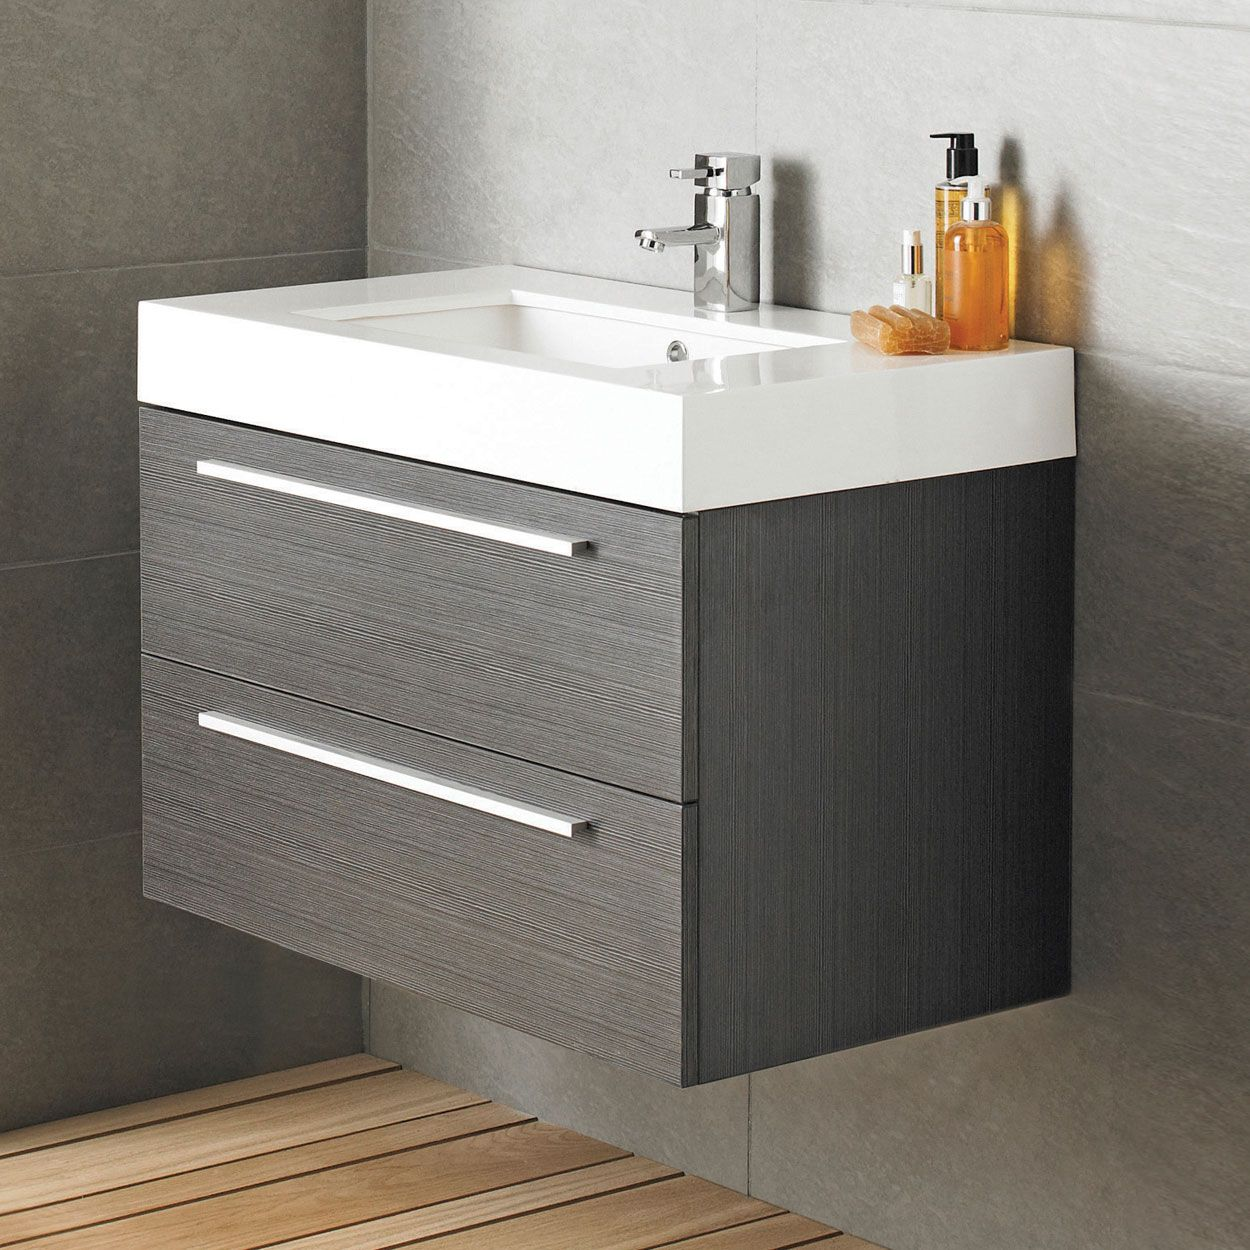 vienna wall mounted bathroom vanity unit mm wide textured  - vienna wall mounted bathroom vanity unit mm wide textured grey